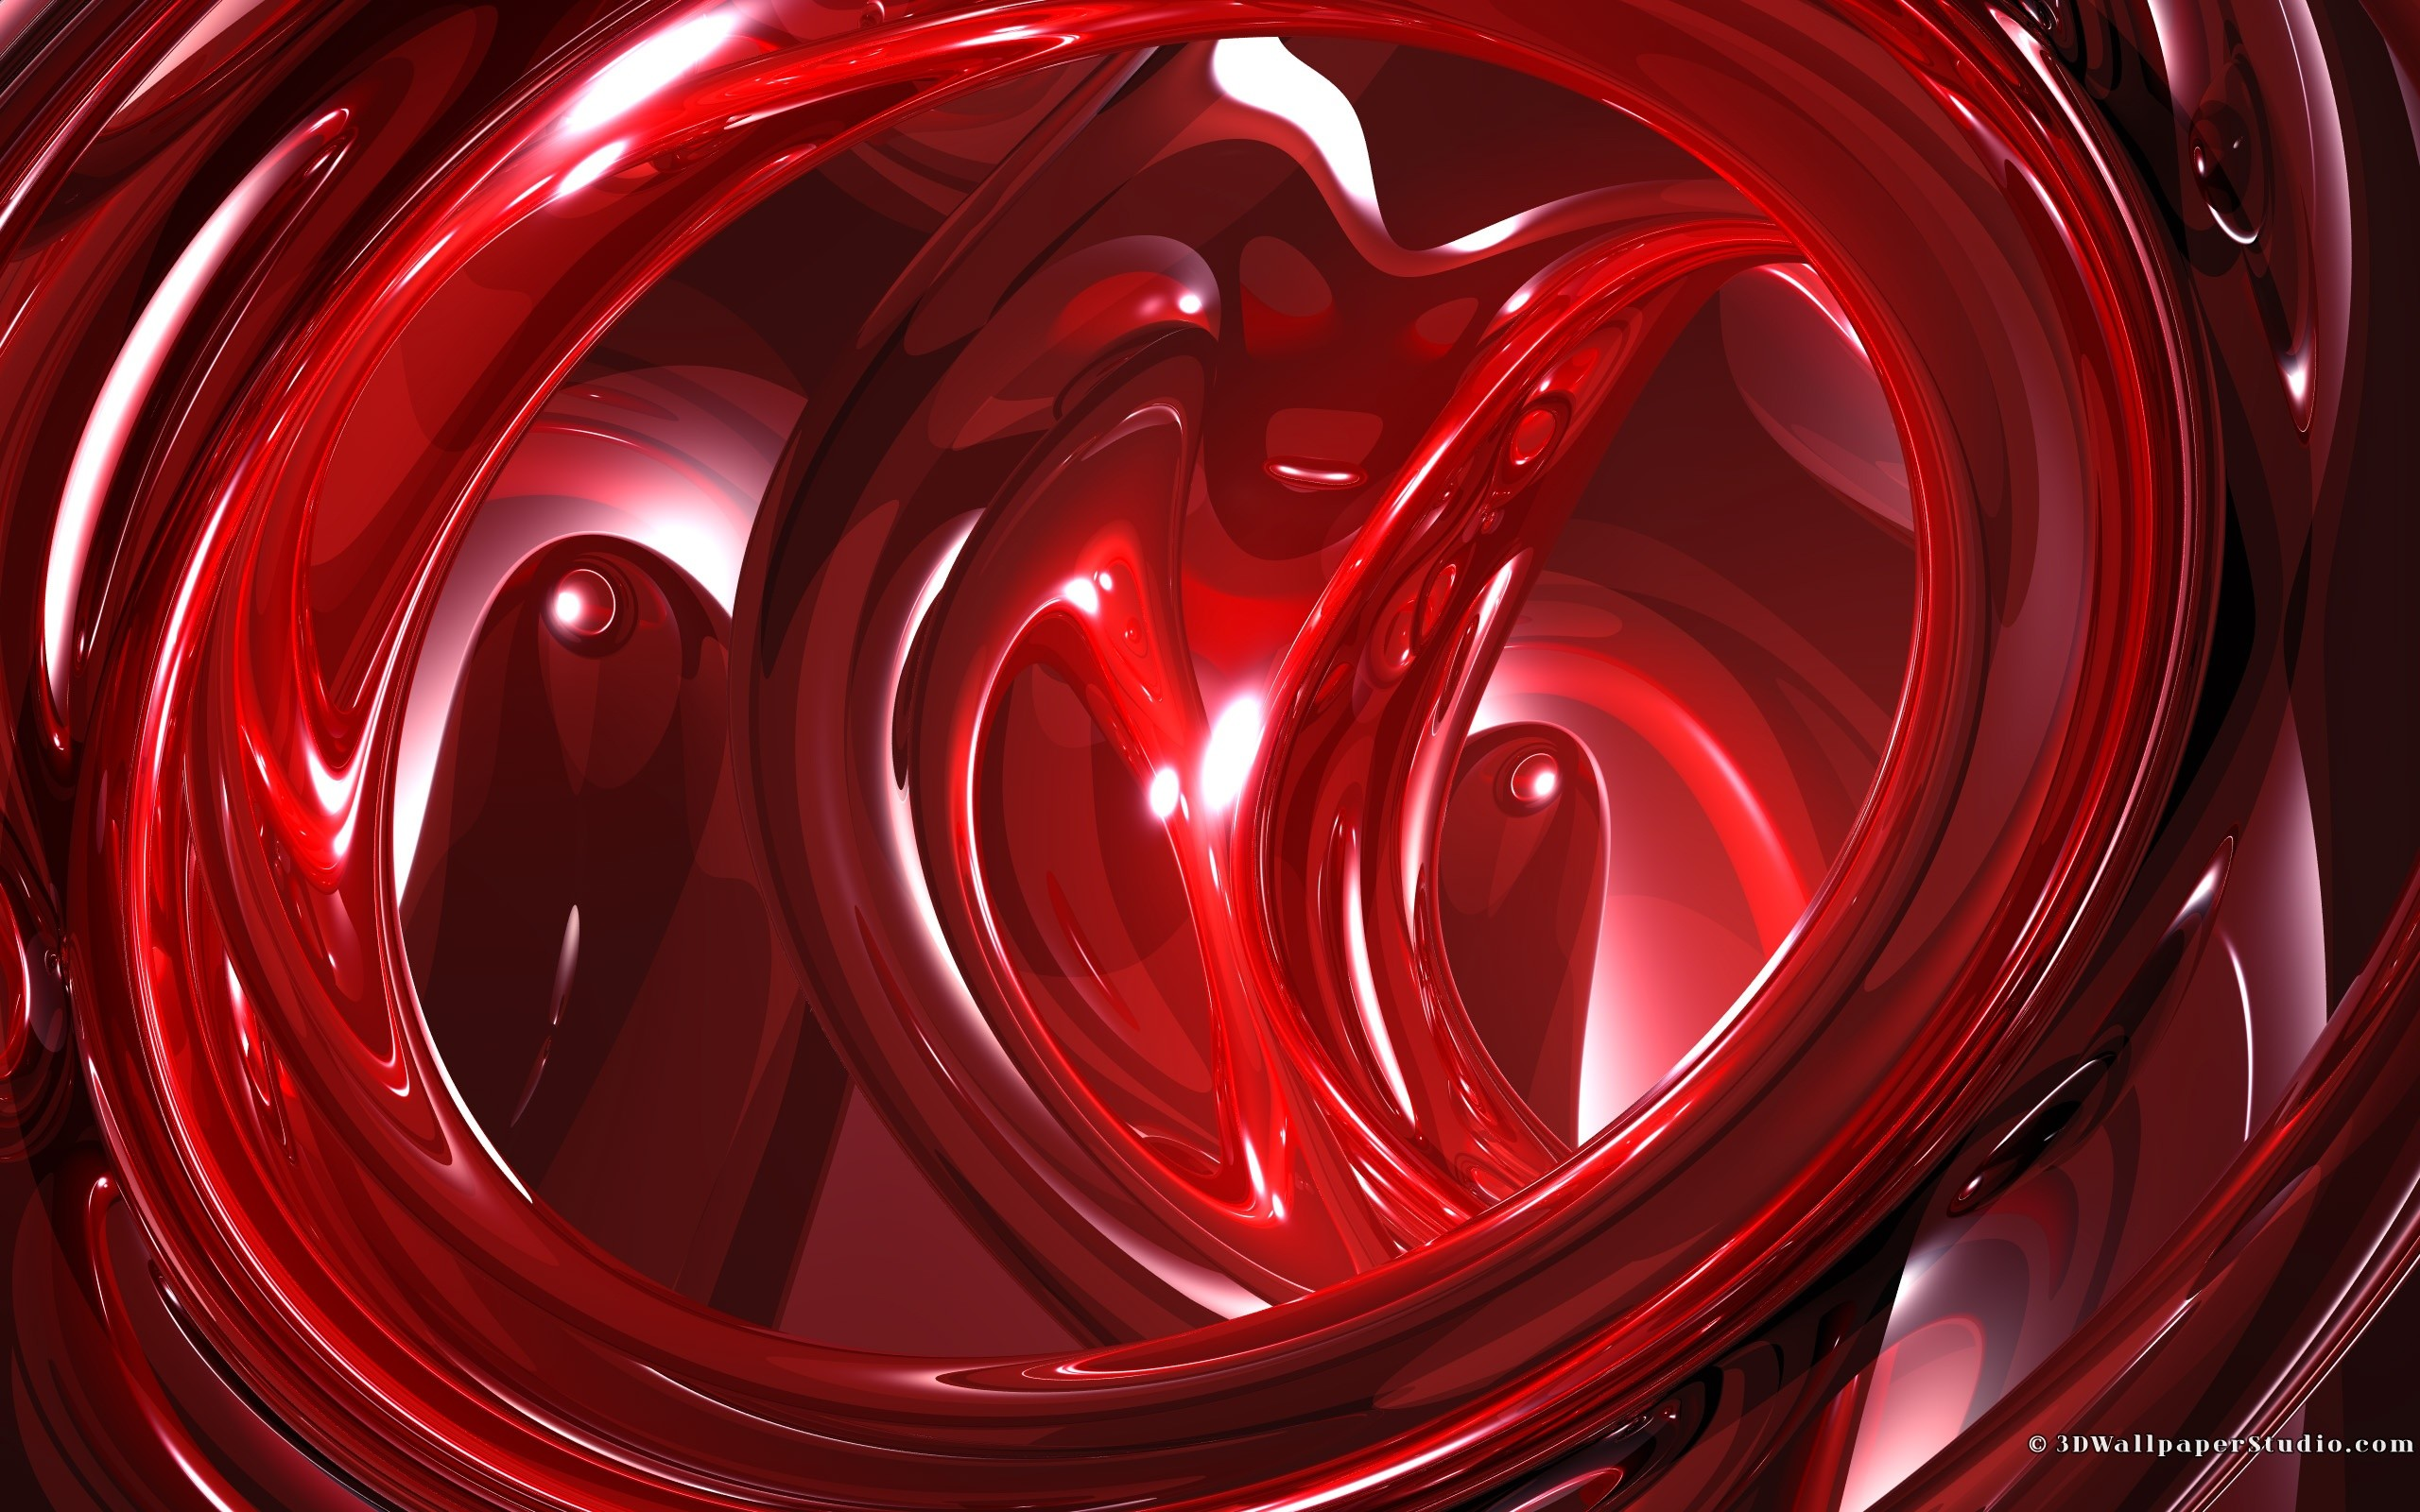 2560x1600 3d abstract wallpapers red -#main